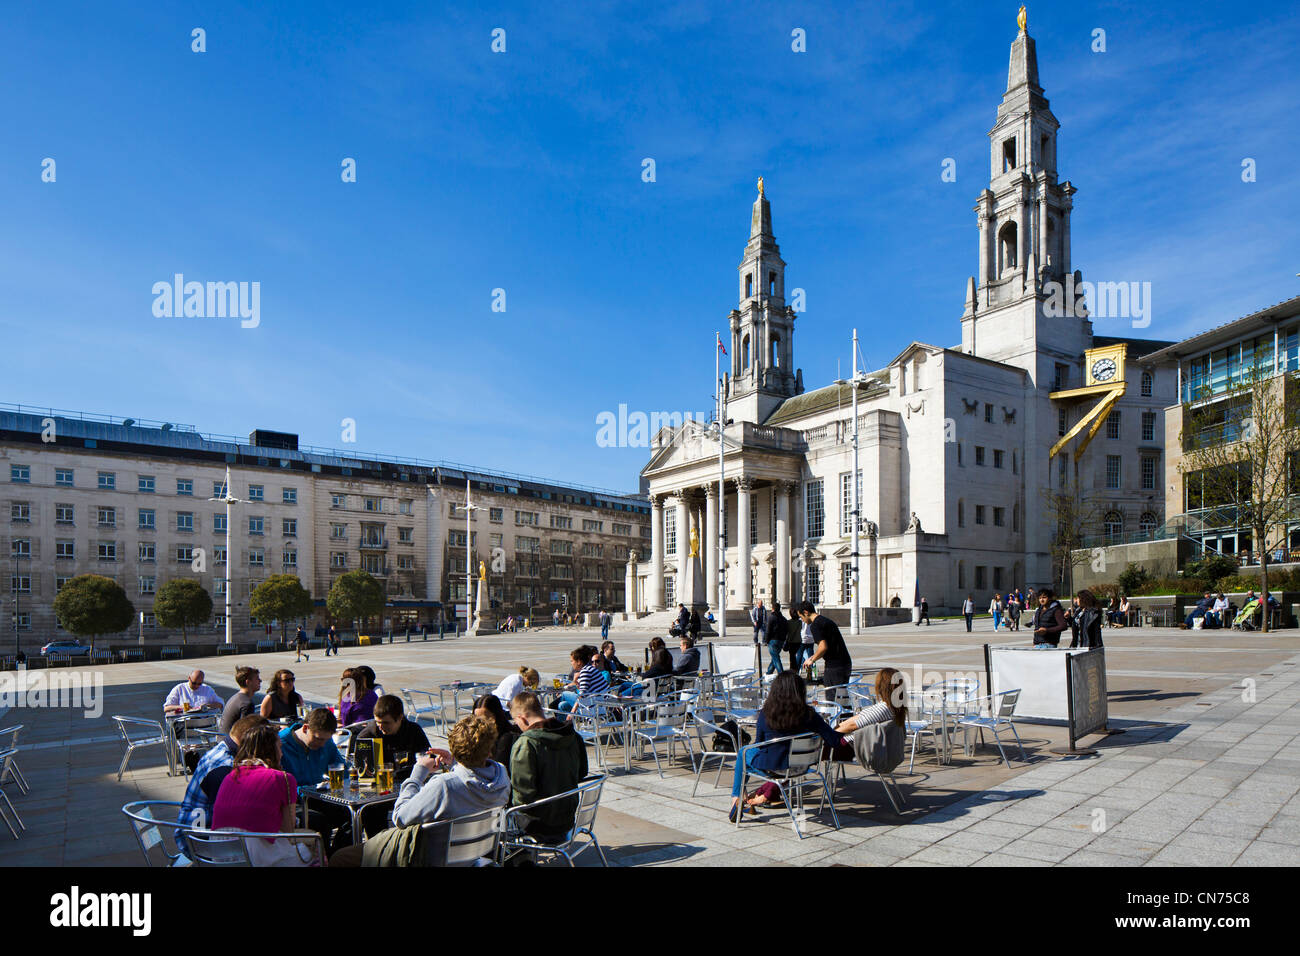 Cafe in front of Leeds Civic Hall, Millenium Square, Leeds, West Yorkshire, England - Stock Image